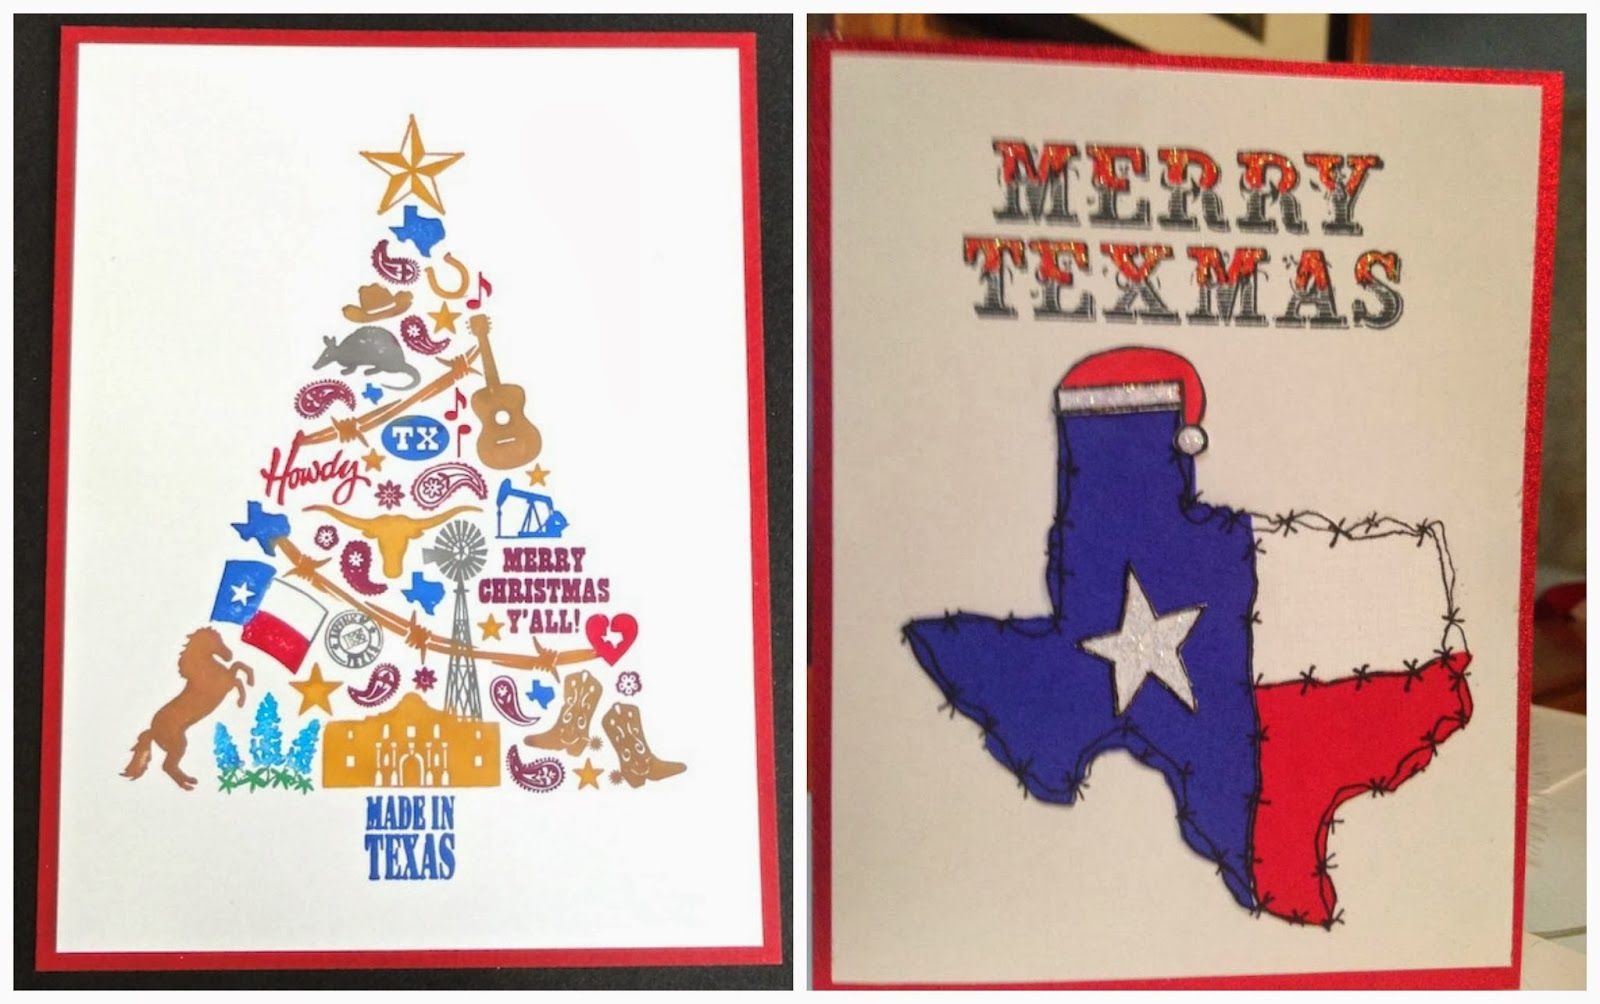 Texas Christmas Cards.Image Result For Texas Christmas Cards Christmas Ideas